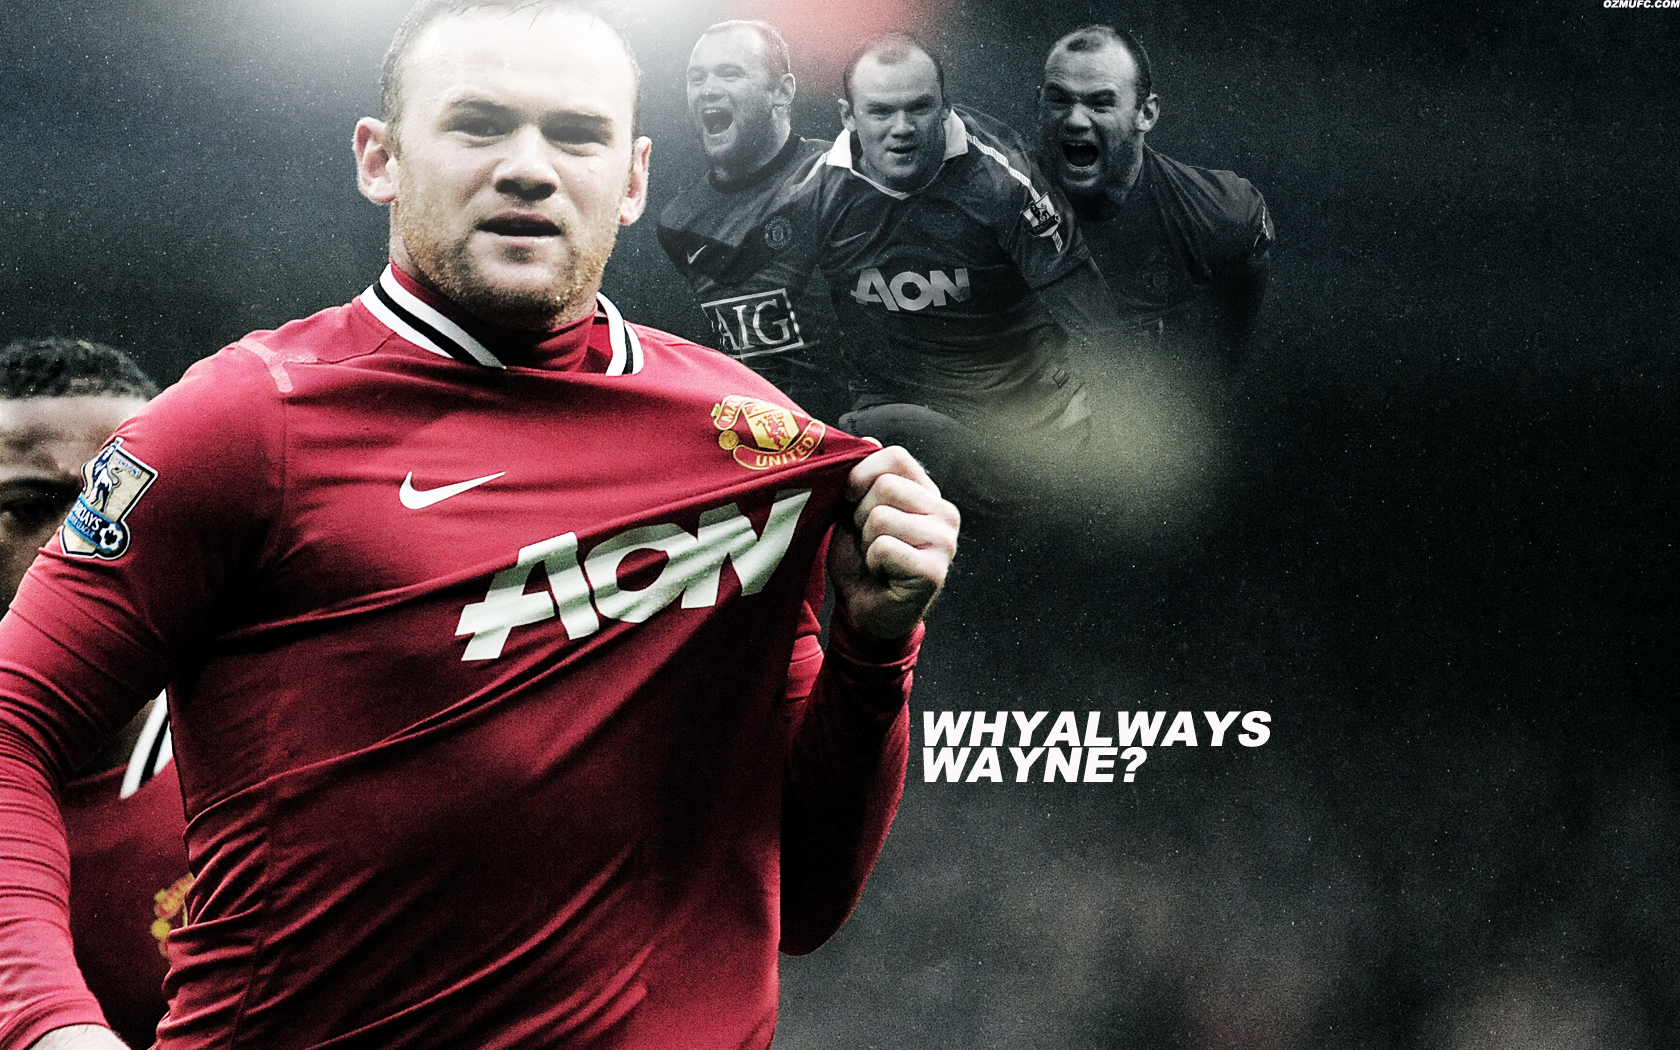 Wayne Rooney Wallpaper 2012 Hd Team manchester united wallpaper page ...